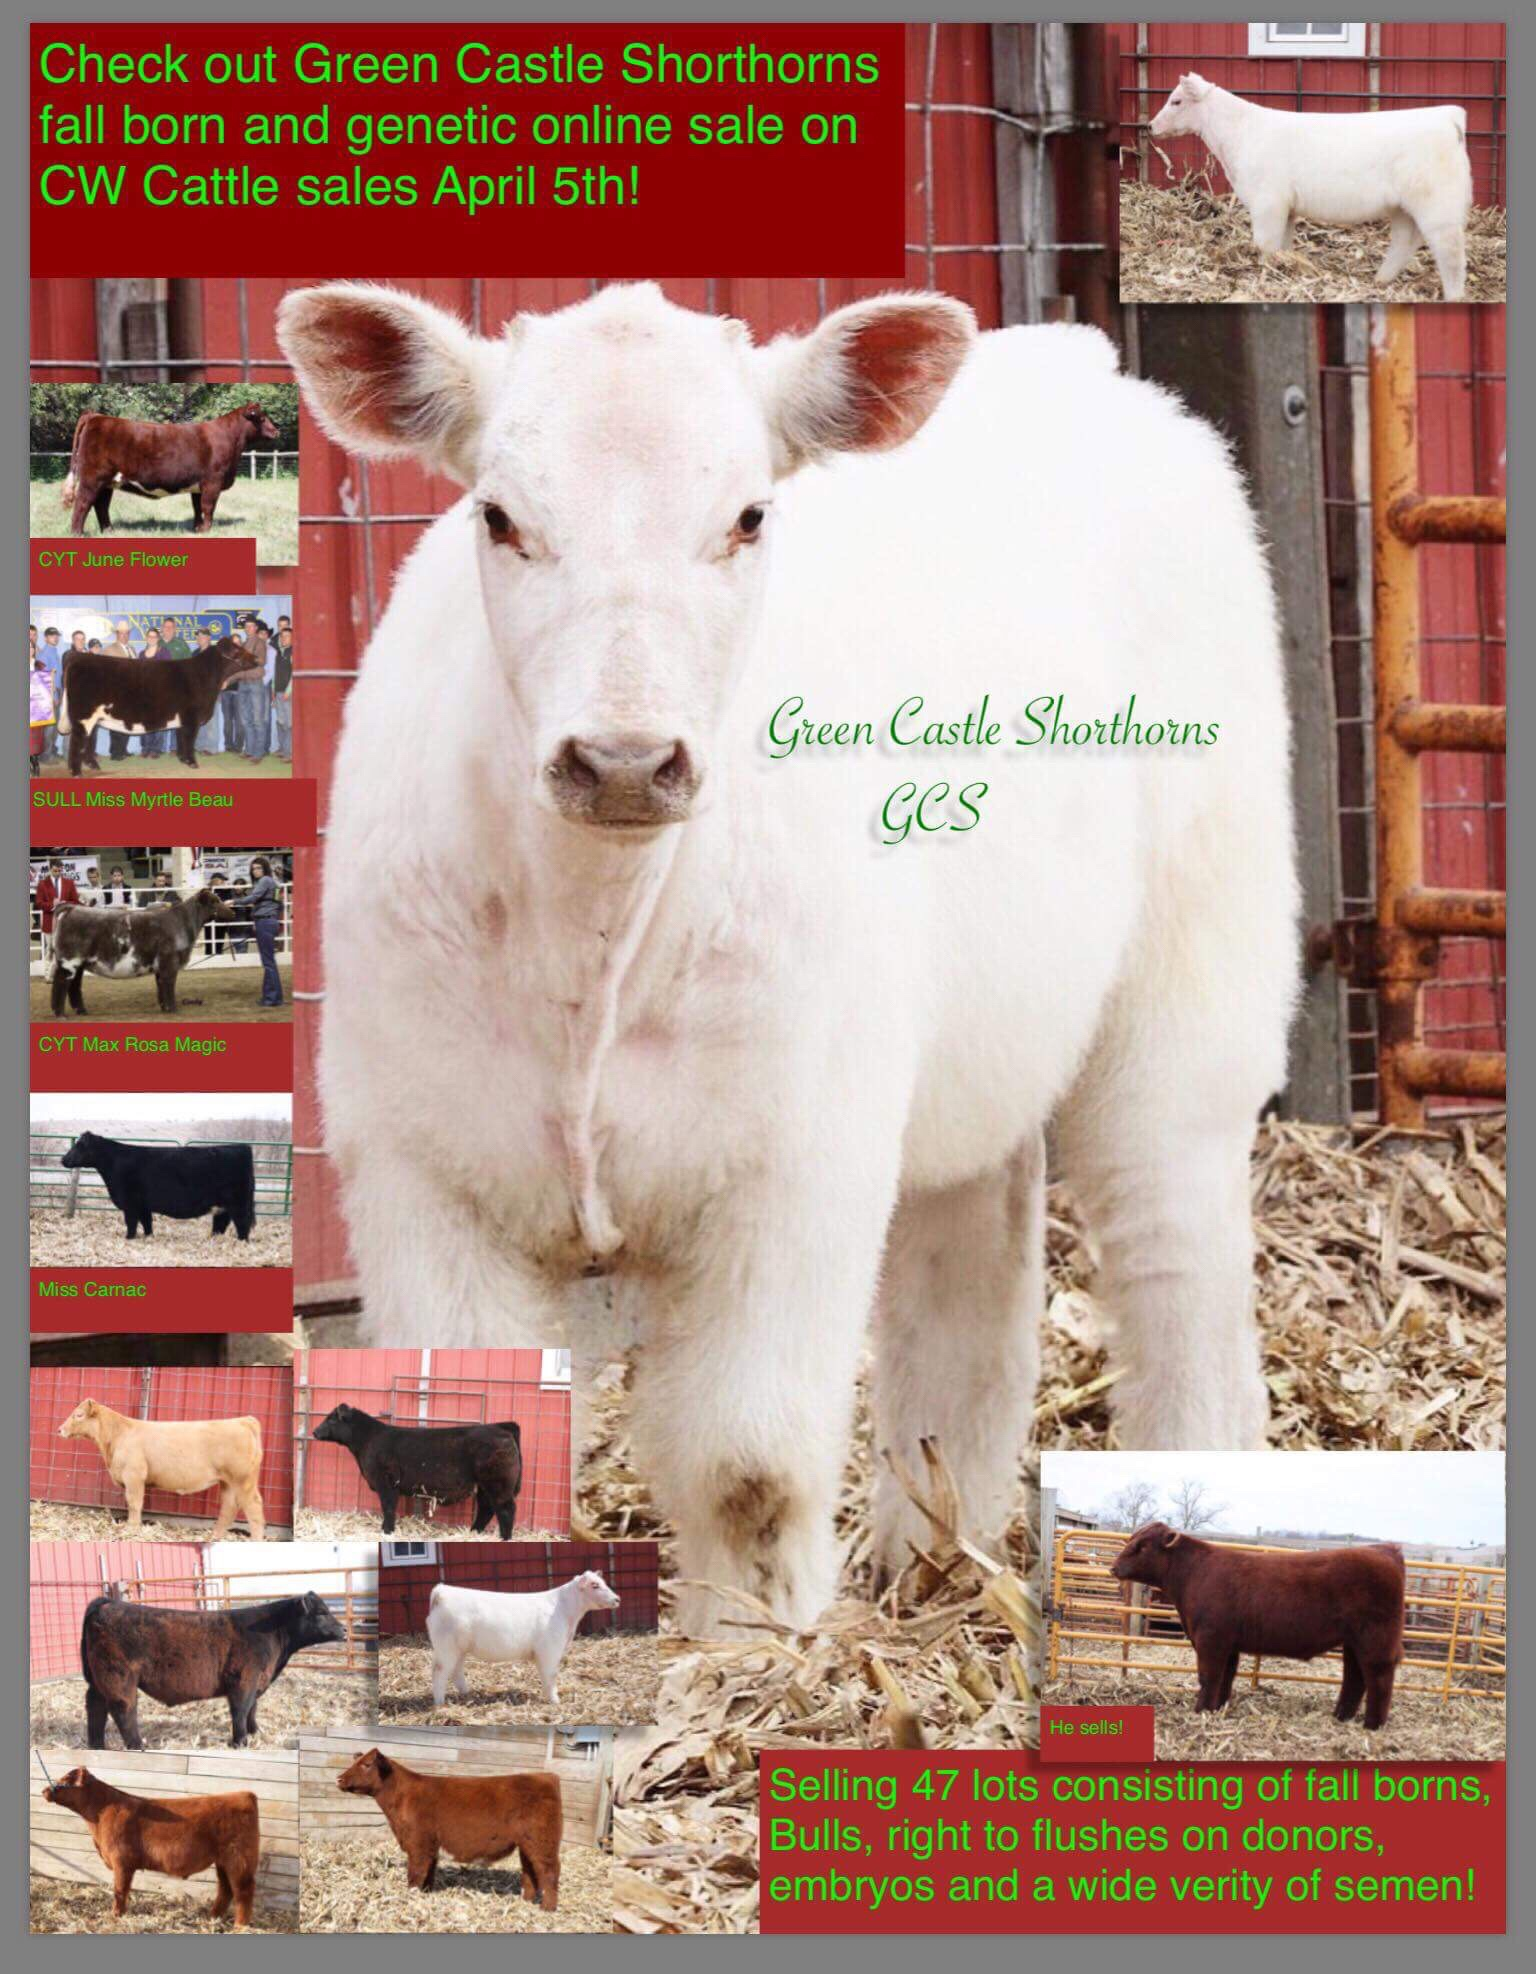 Green Castle Shorthorns fall born and genetic online sale on CW